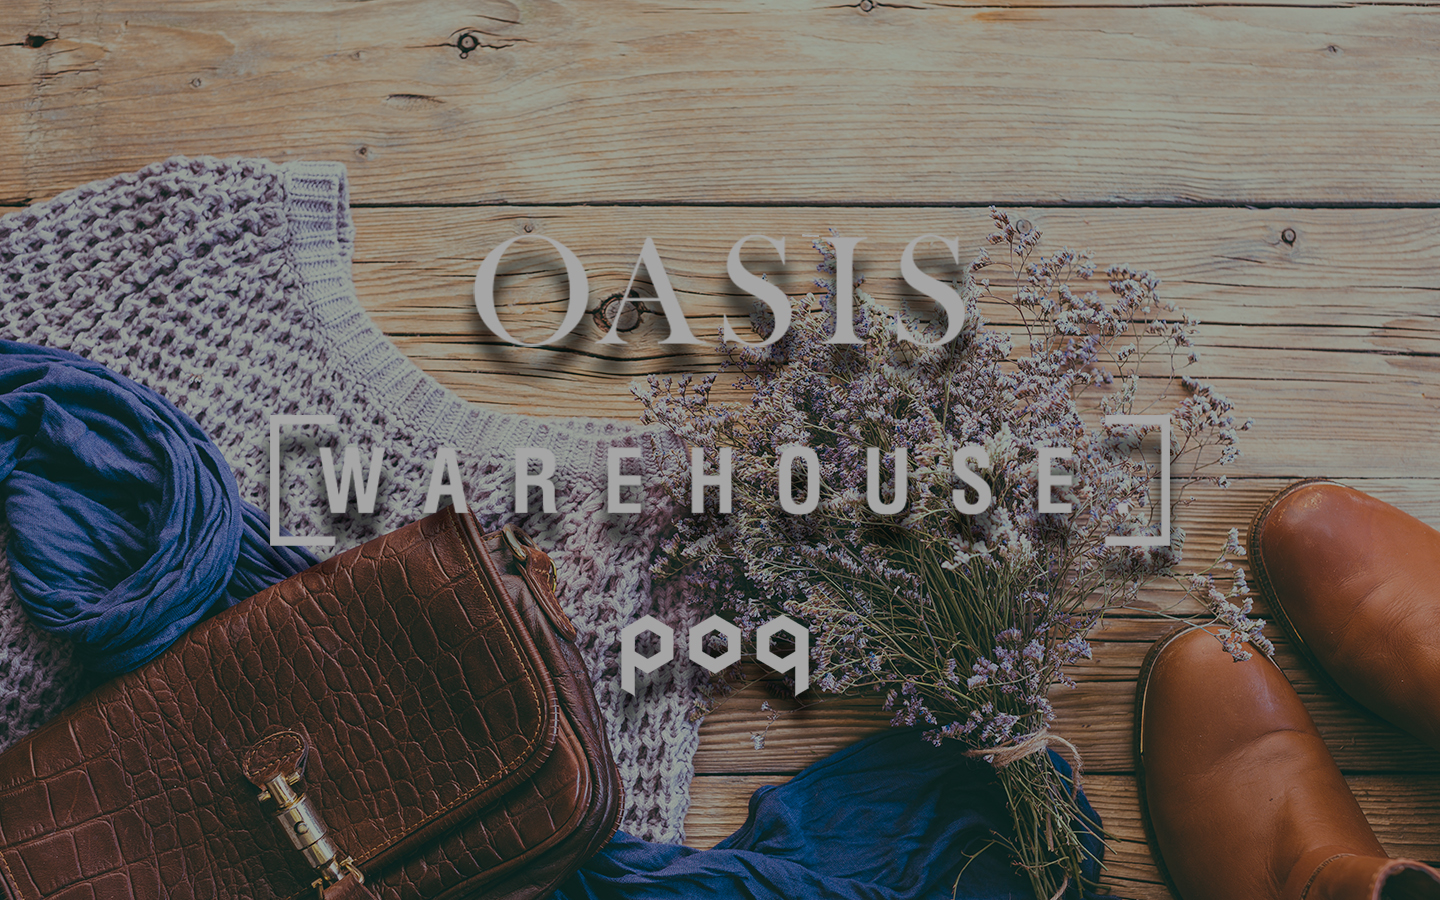 Oasis-Warehouse Press release header V3 | Poq - The app commerce company